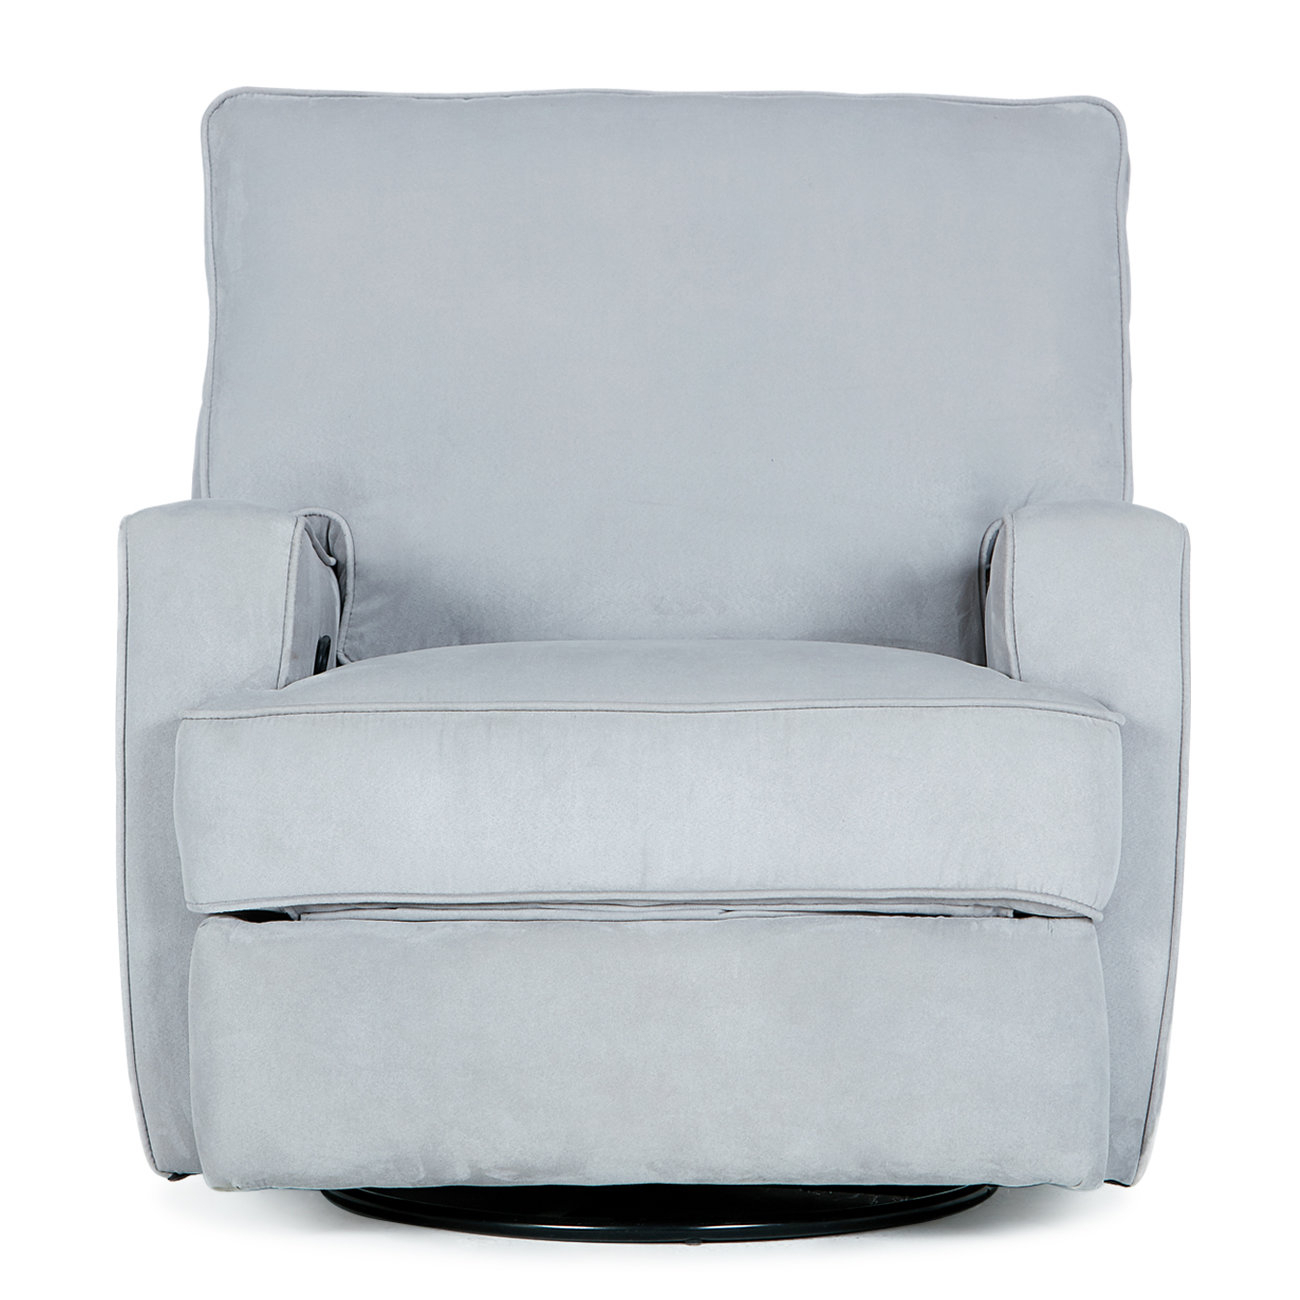 Darby Home Co Finck Manual Swivel Recliner | Wayfair Intended For Dale Iii Polyurethane Swivel Glider Recliners (Image 10 of 25)